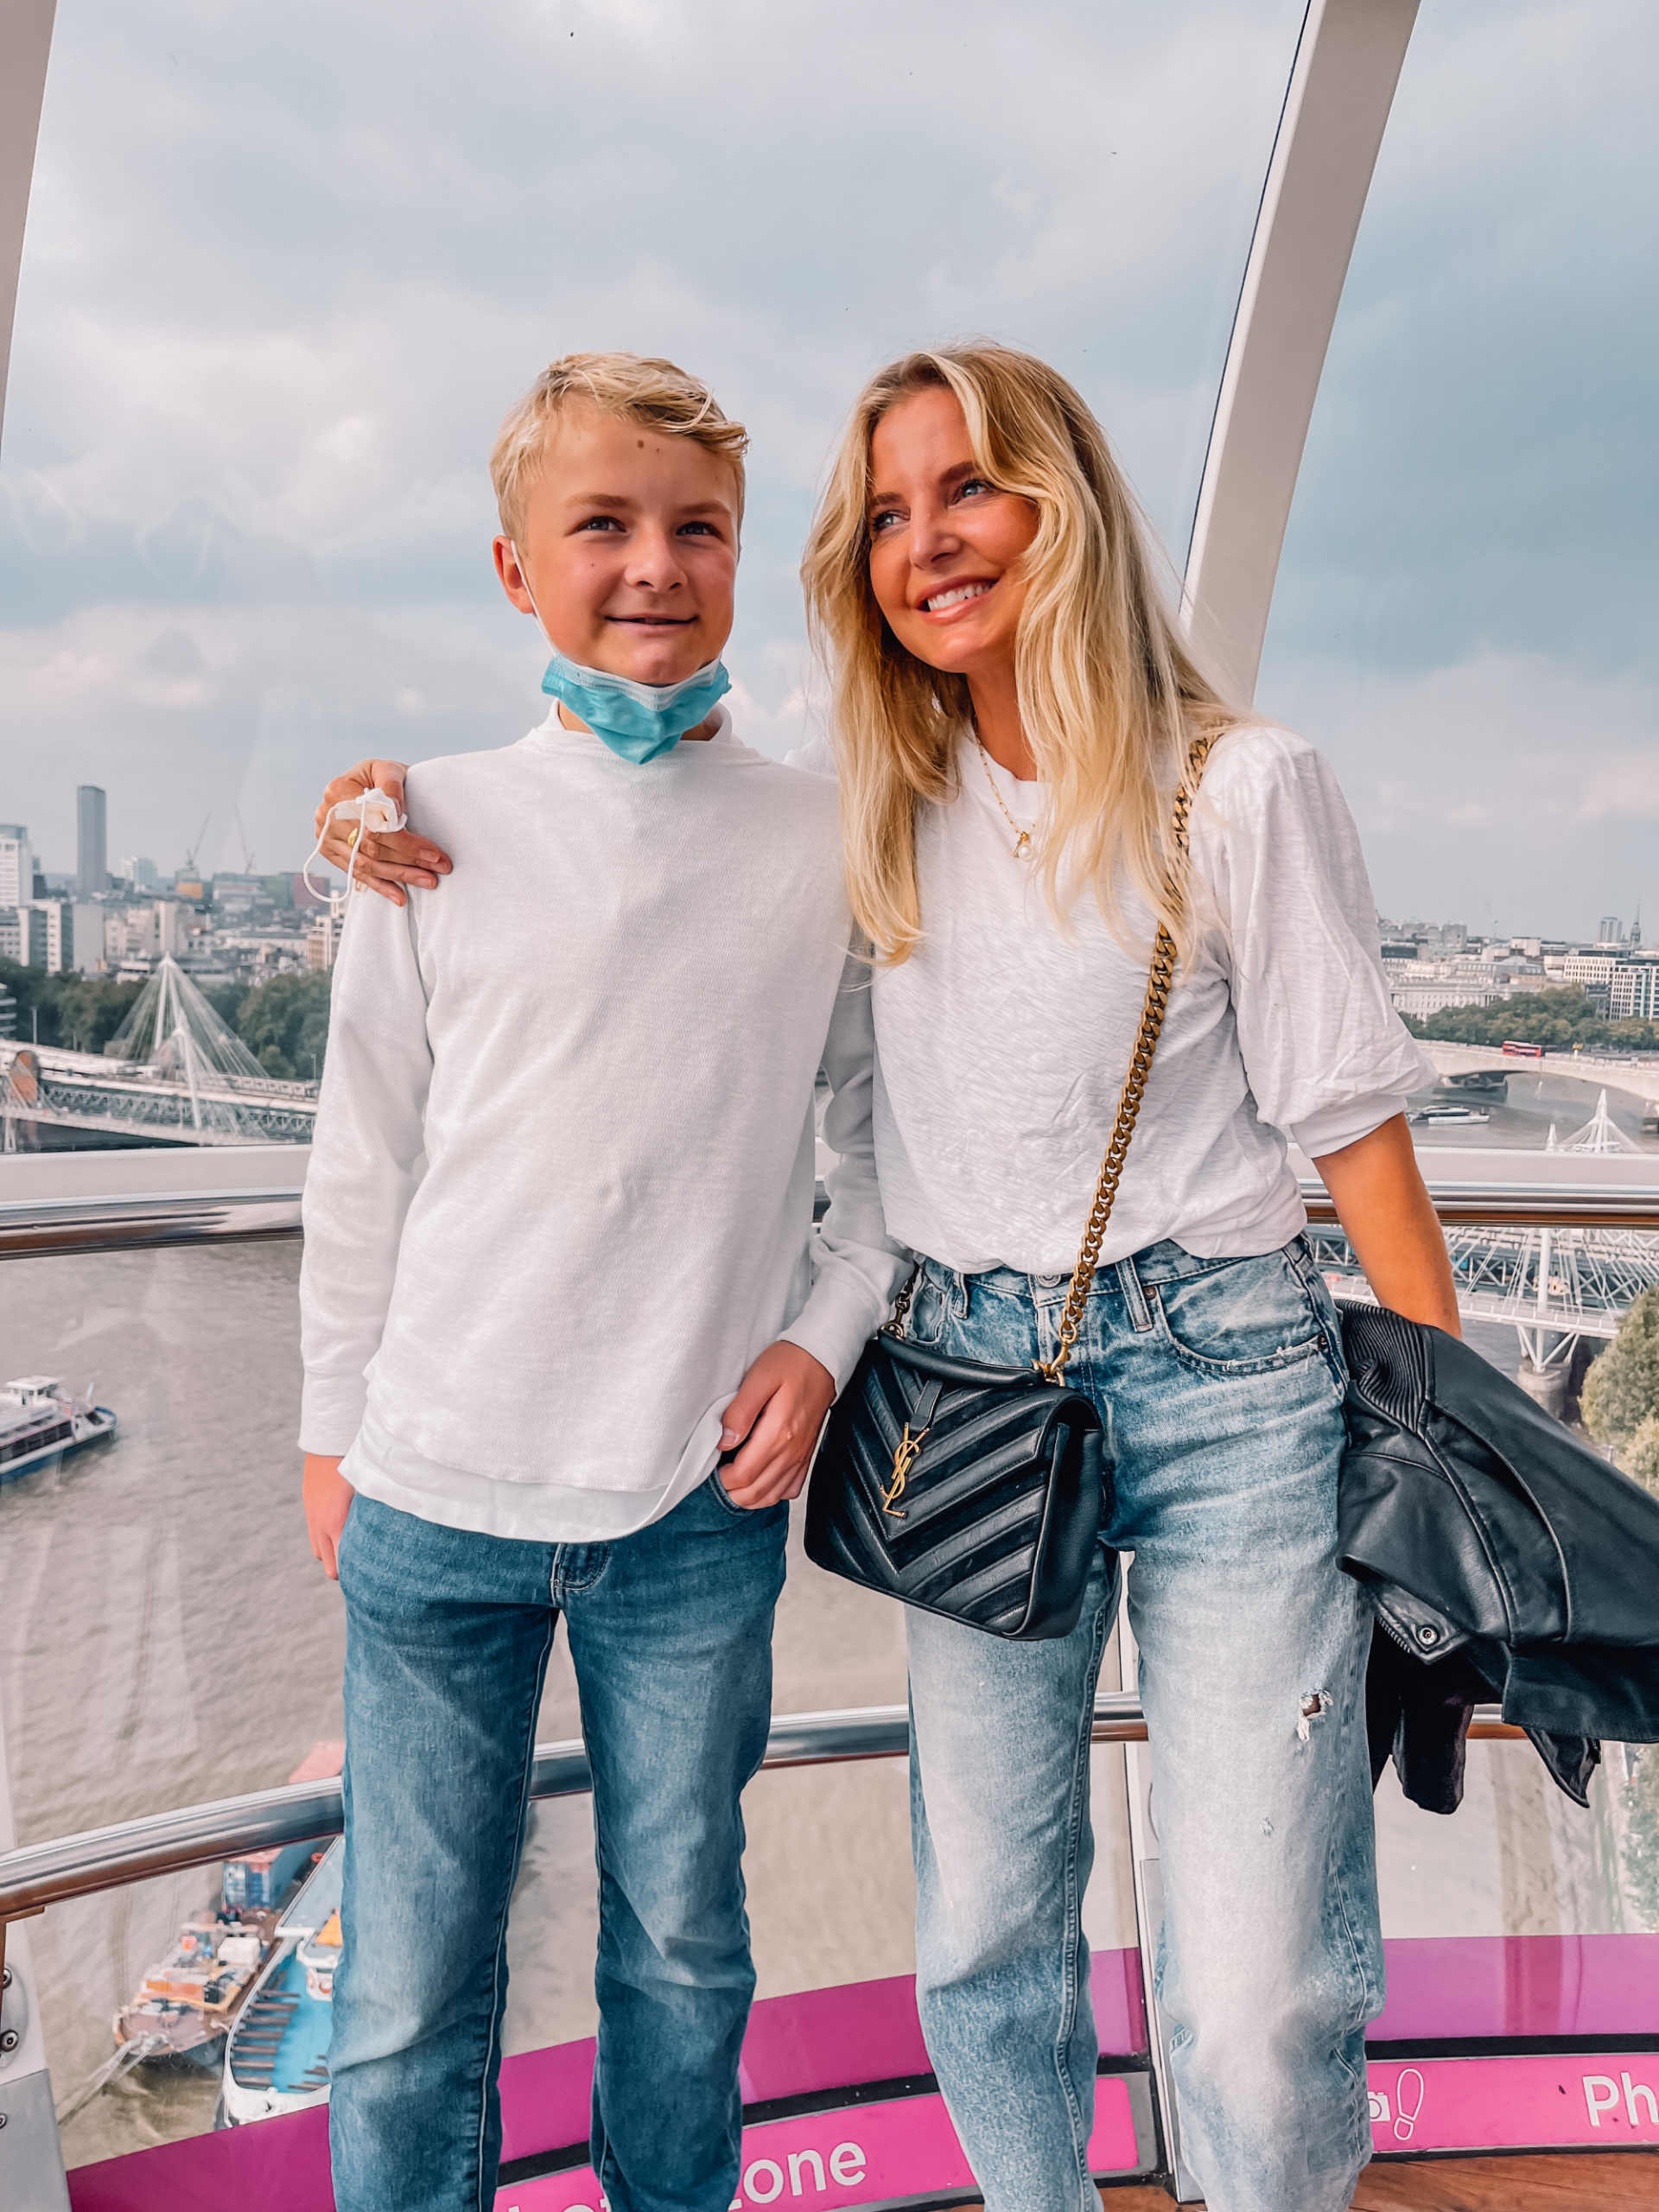 where to travel from spain, travel from spain, travel from madrid, erin bsubee, where to travel, weekend trips from spain, weekend trips from madrid, london, england, london eye, ysl chevron bag, nation ltd white tee, moussy lomita jeans, black leather moto jacket